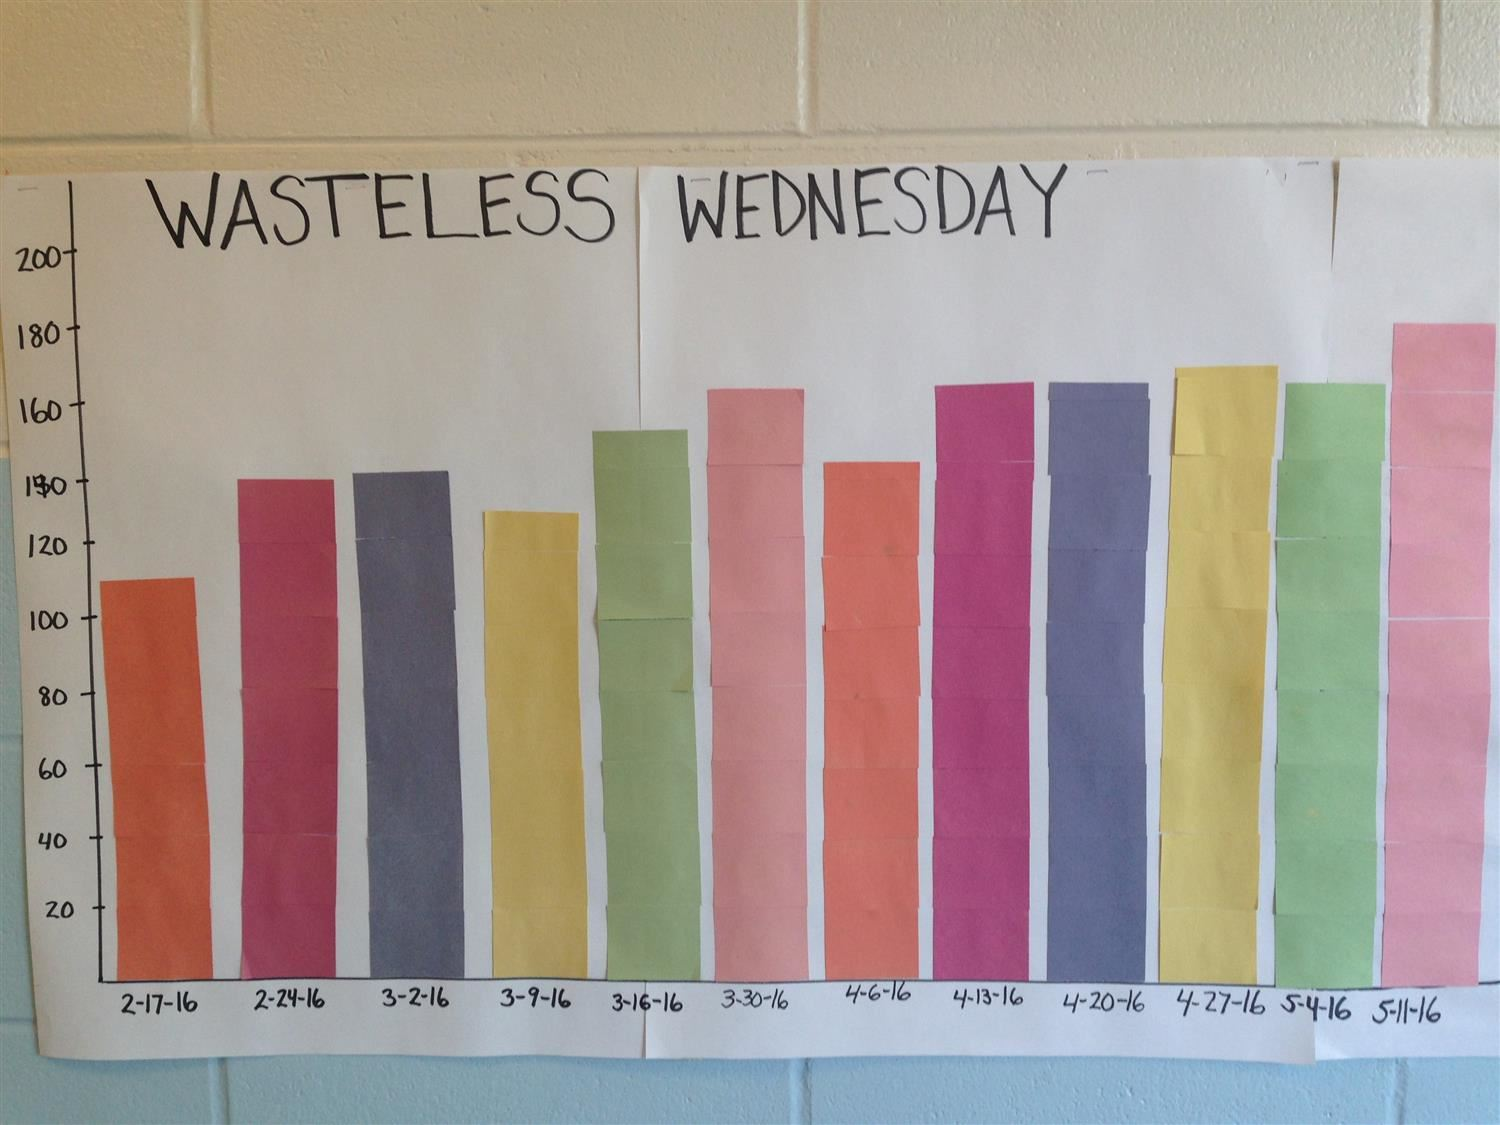 Wasteless Wednesday Graph